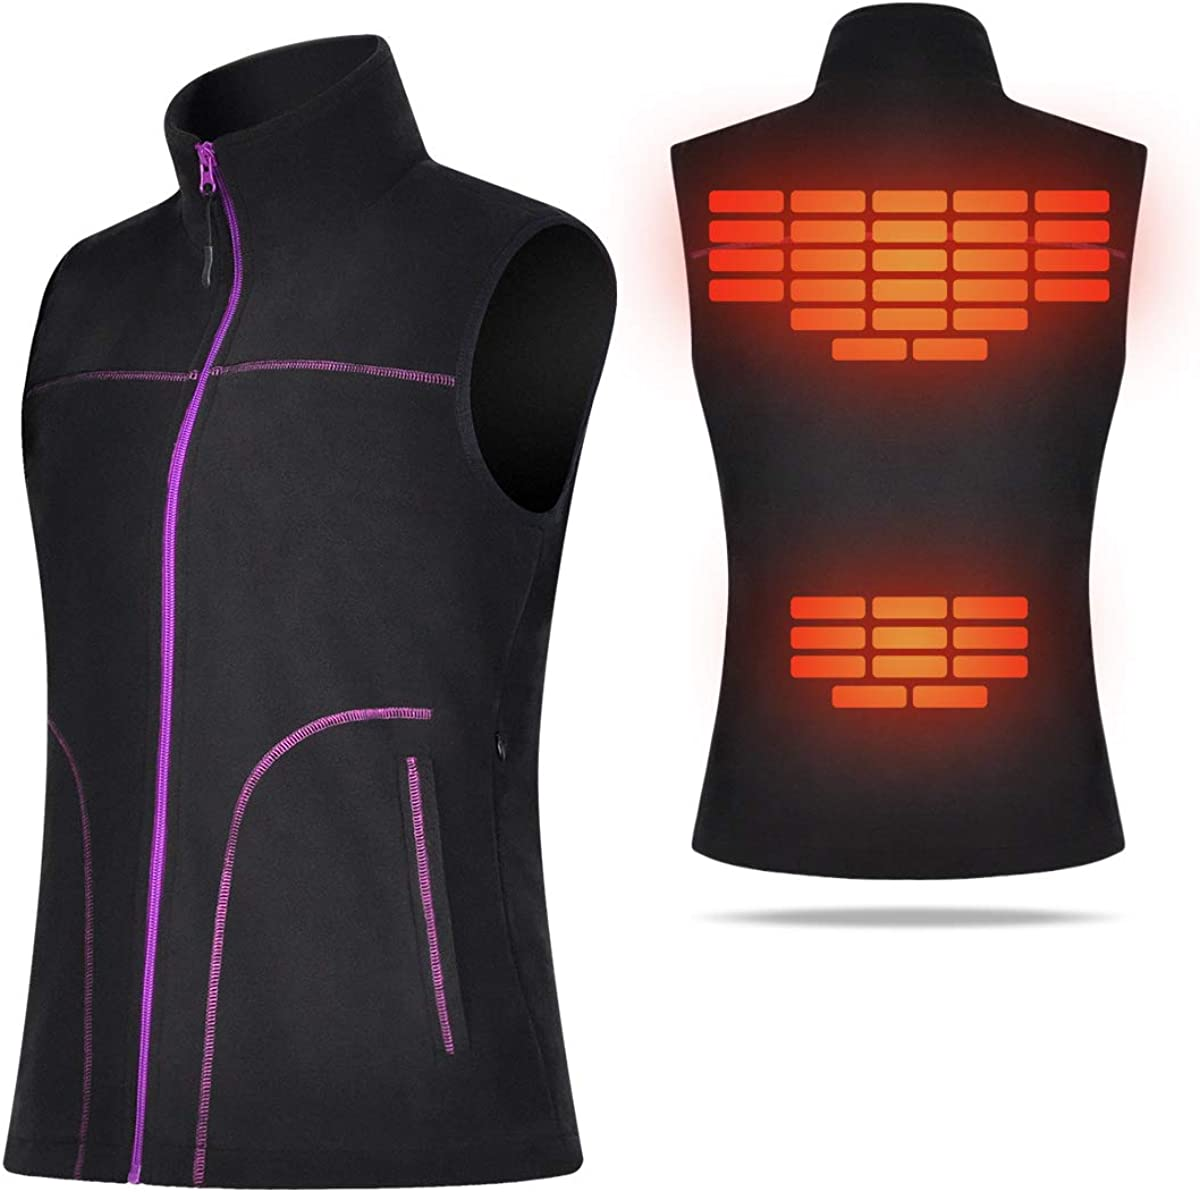 COVVY Heated Vest for Women Electric Warm Outerwear/w Battery Pack, Washable